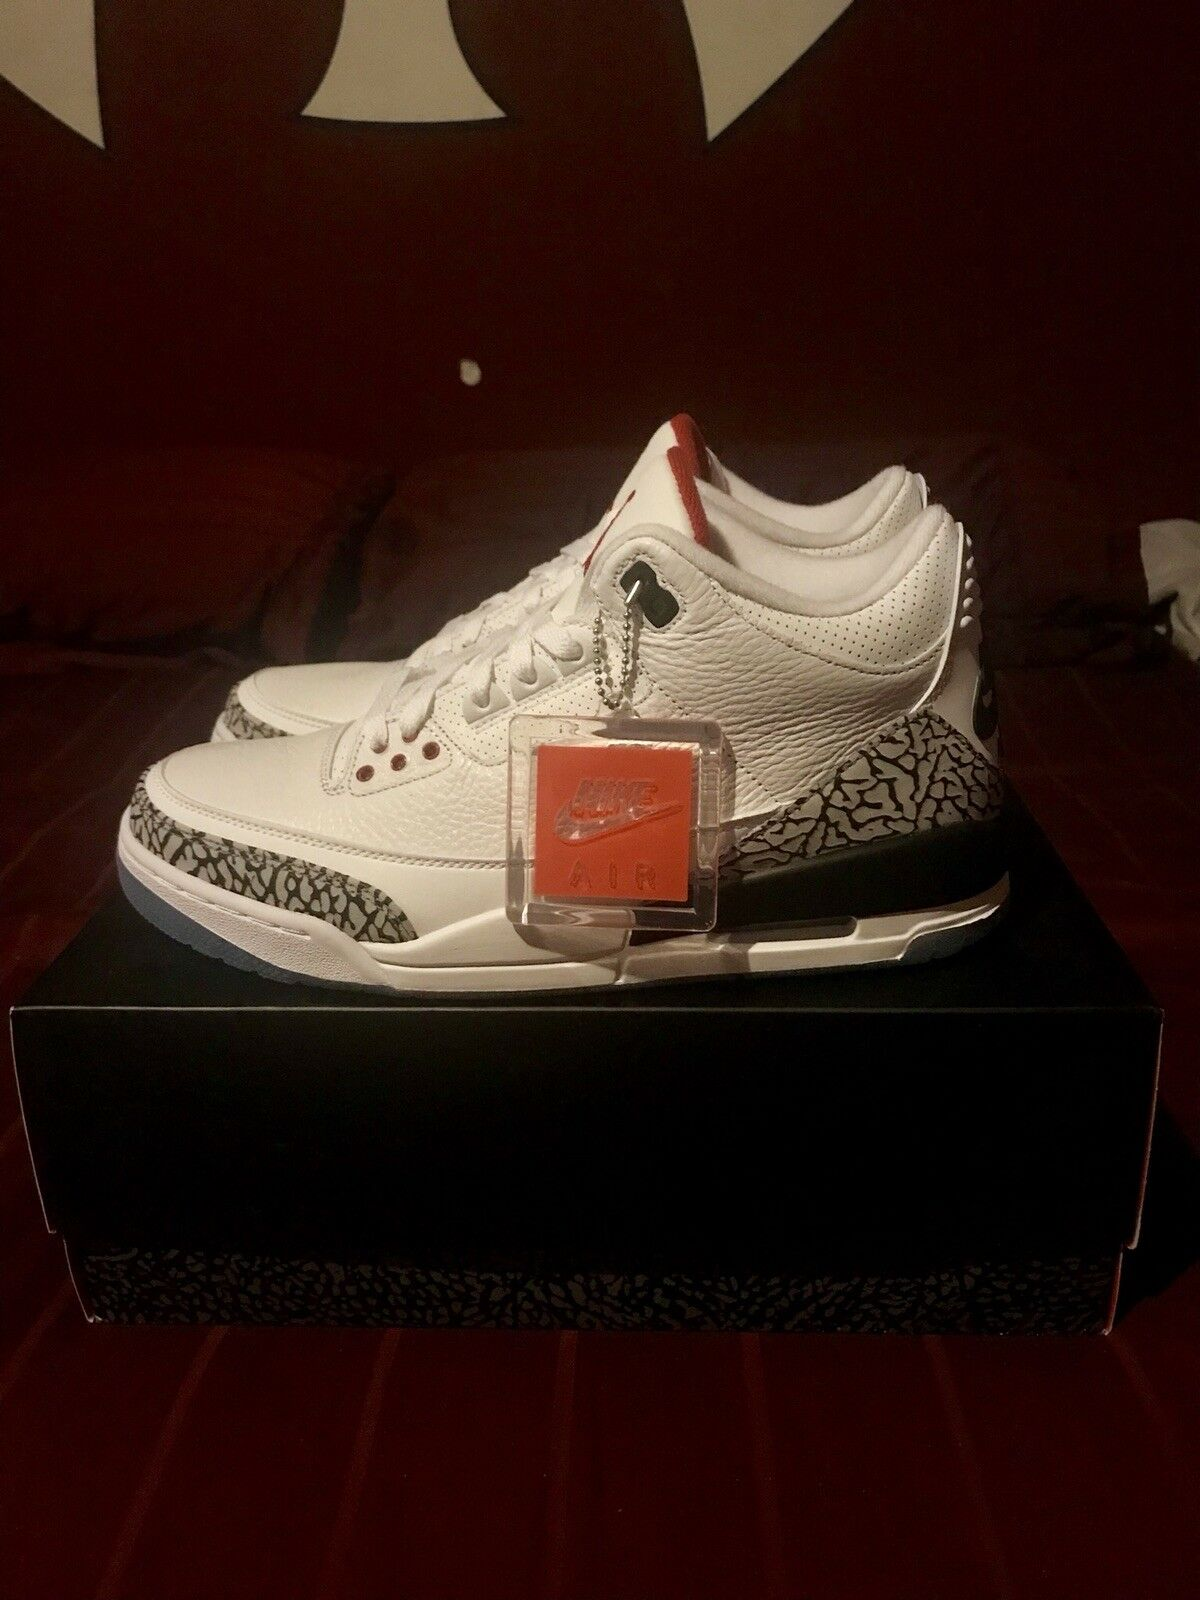 Nike Air Jordan Retro 3 Free Throw Line White Cement size 10.5 DS